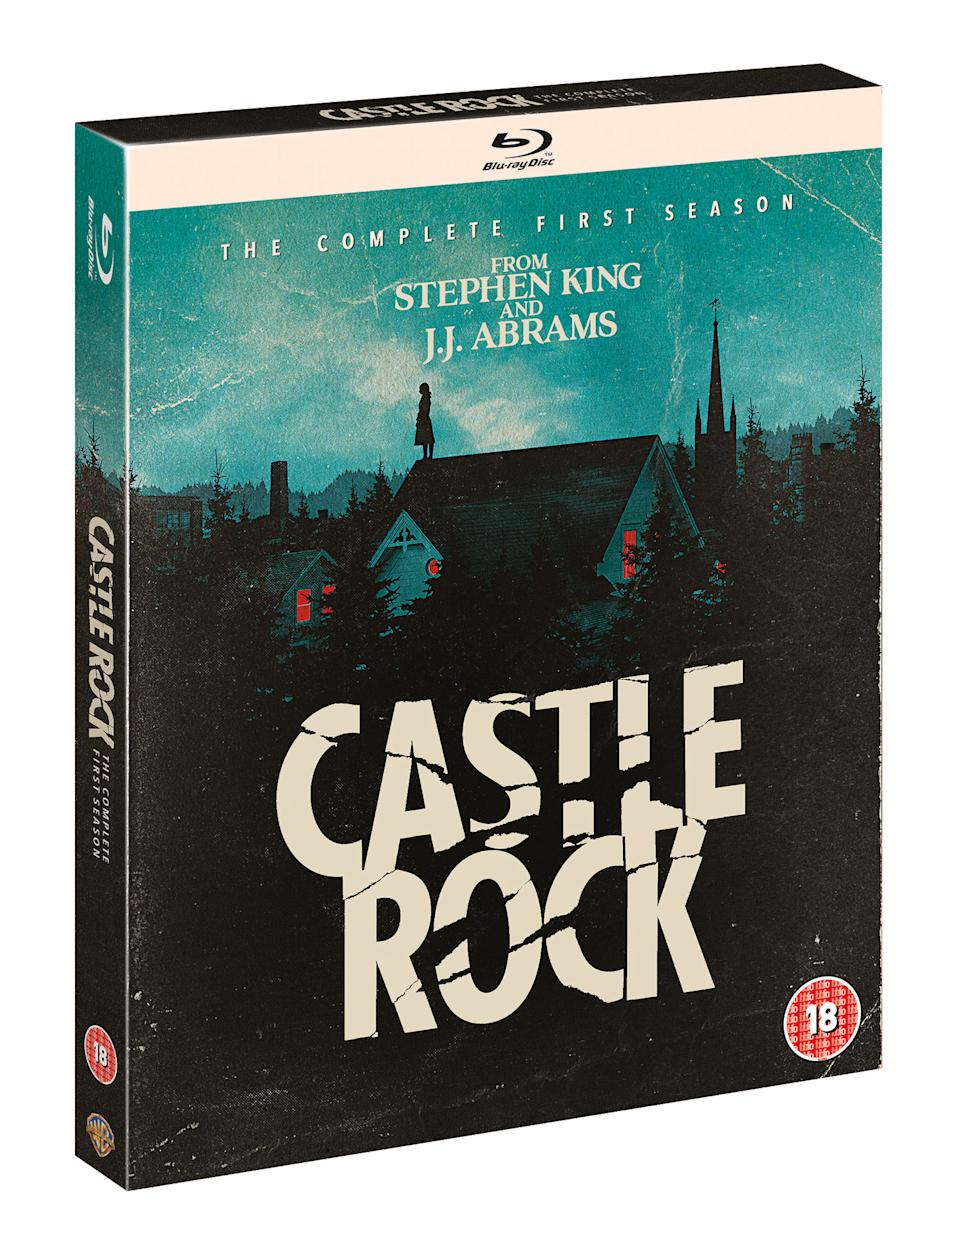 Castle Rock: The Complete First Season arrives on DVD, Blu-ray and Digital Download on 2 September. (Warner Bros. Home Entertainment Inc.)